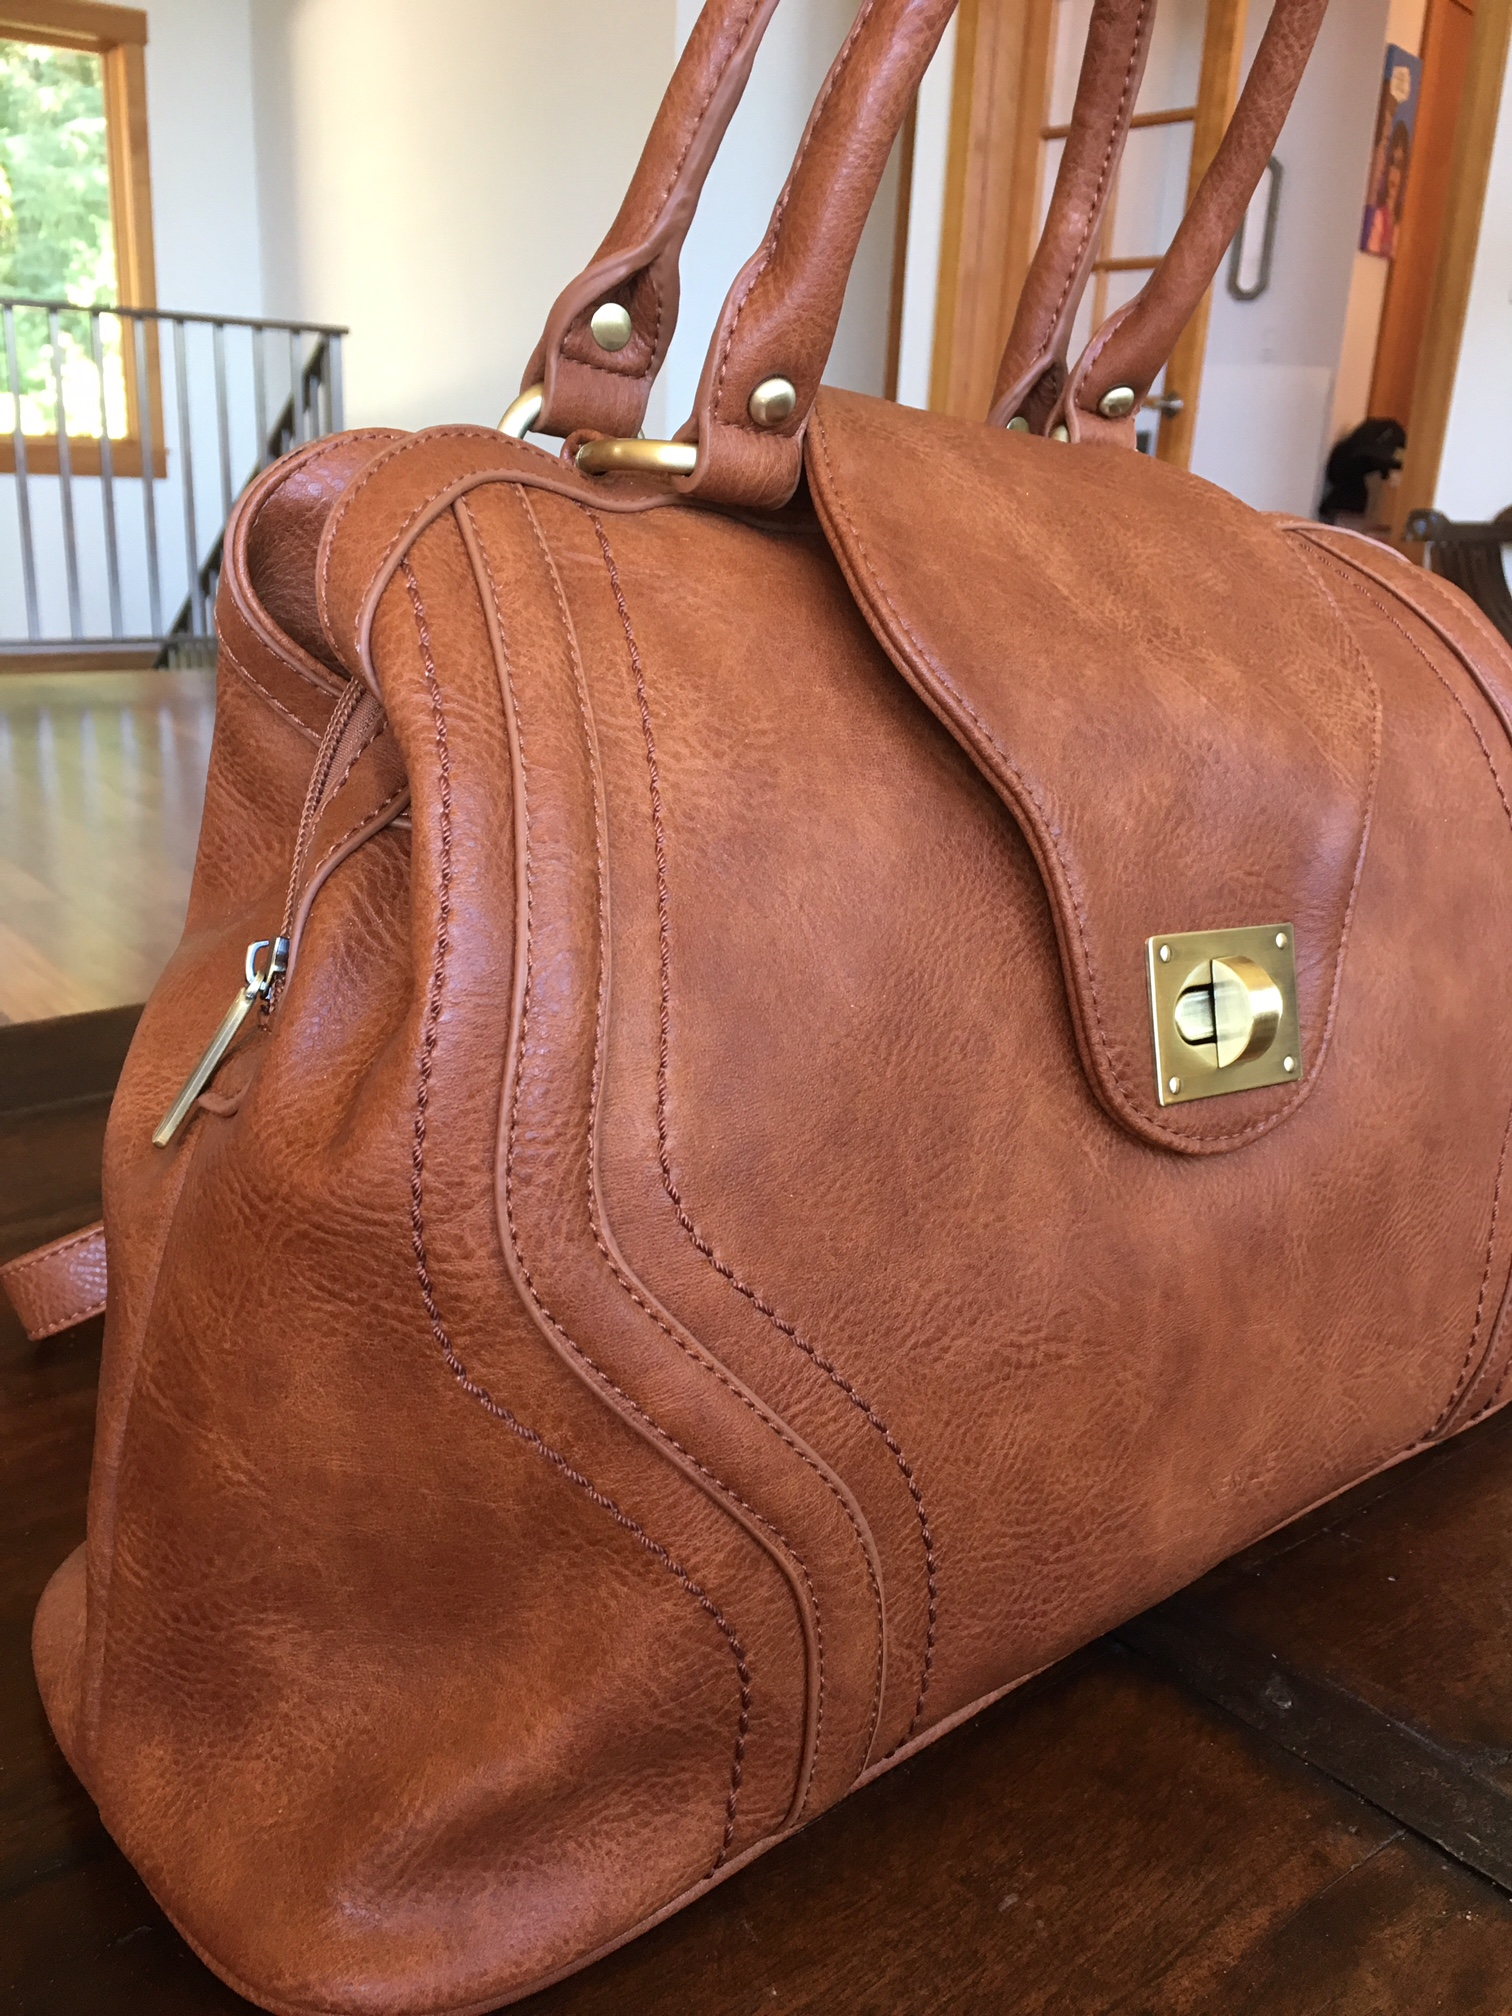 This Is Newlie S Gail Satchel 106 A Gorrrrrgeous Bag Designed By Leslie Newton Of The Well Known Diaper Company Timi